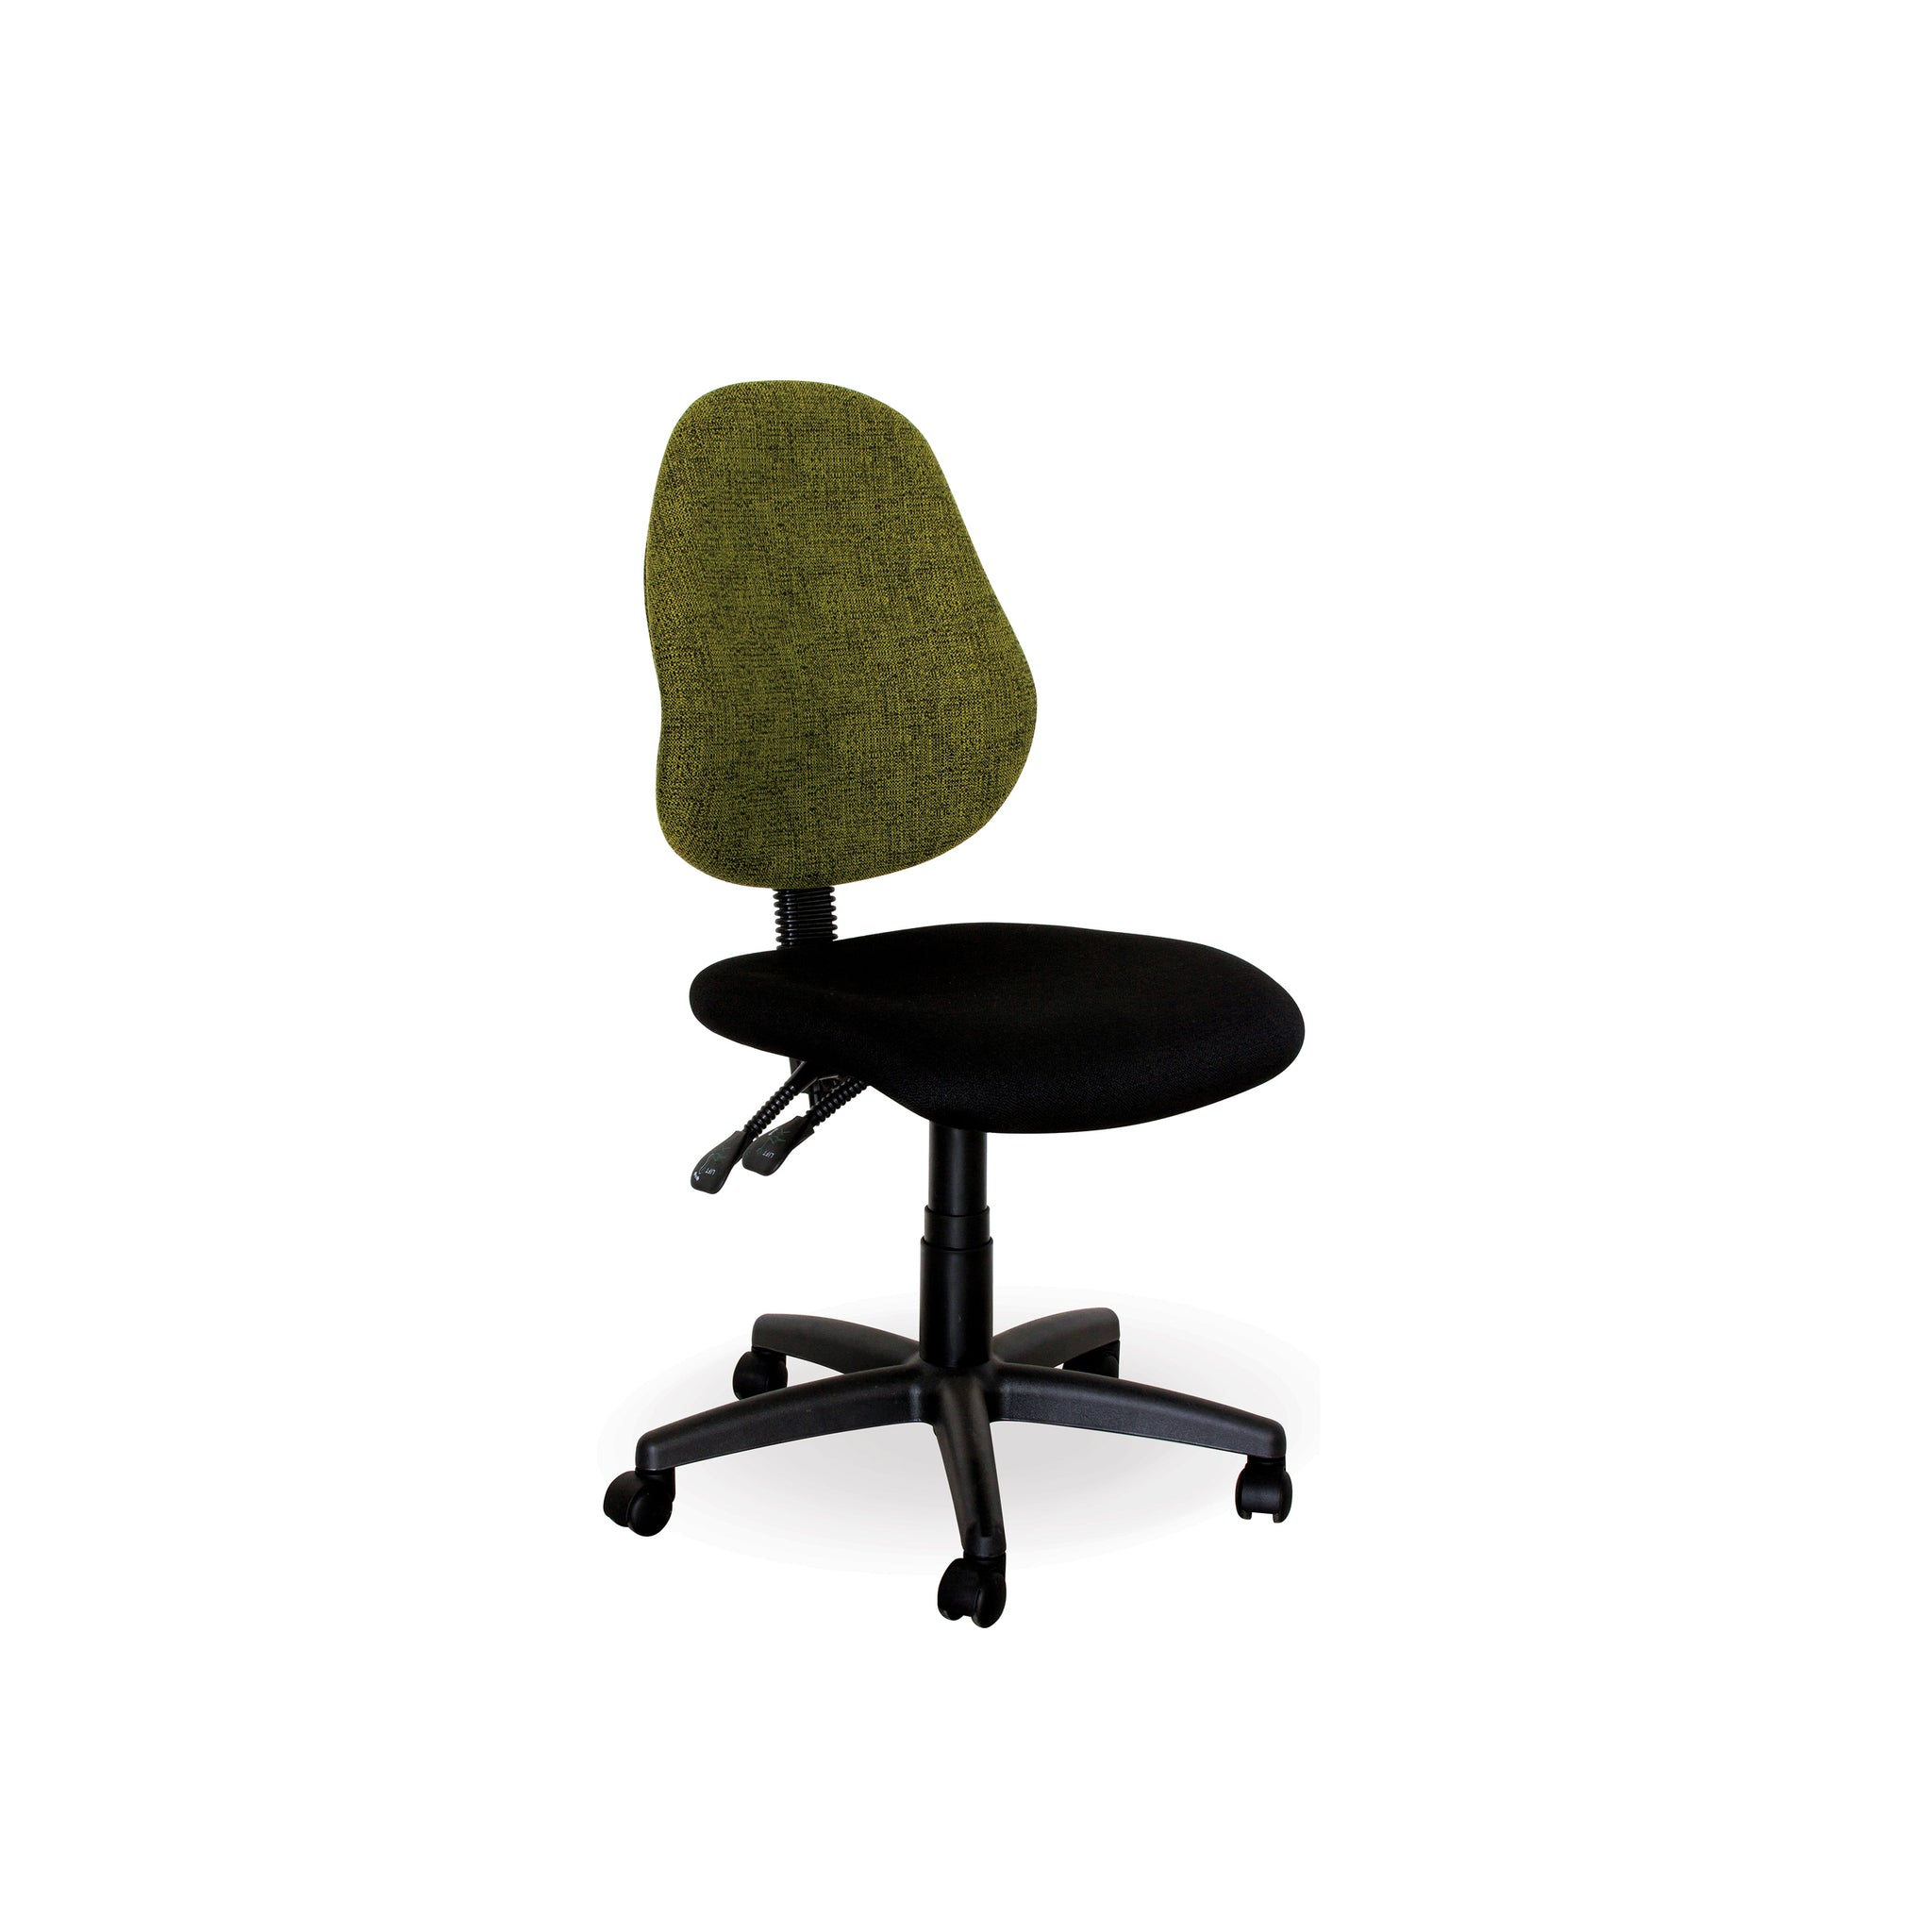 Hedcor Lucea operator office chair